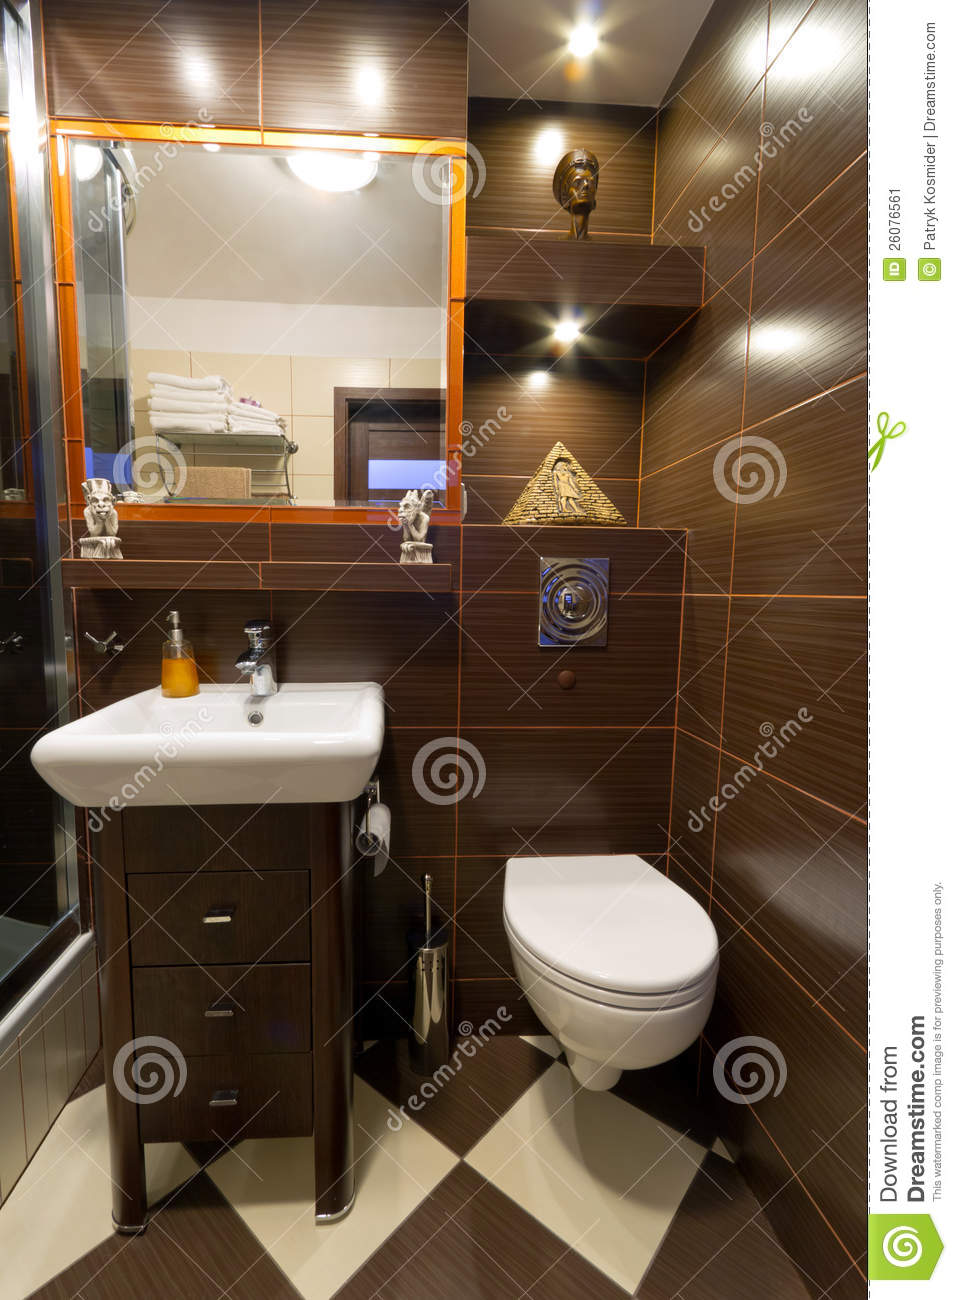 Bathroom interior with brown tiles stock image image - Smart tiles chez leroy merlin ...